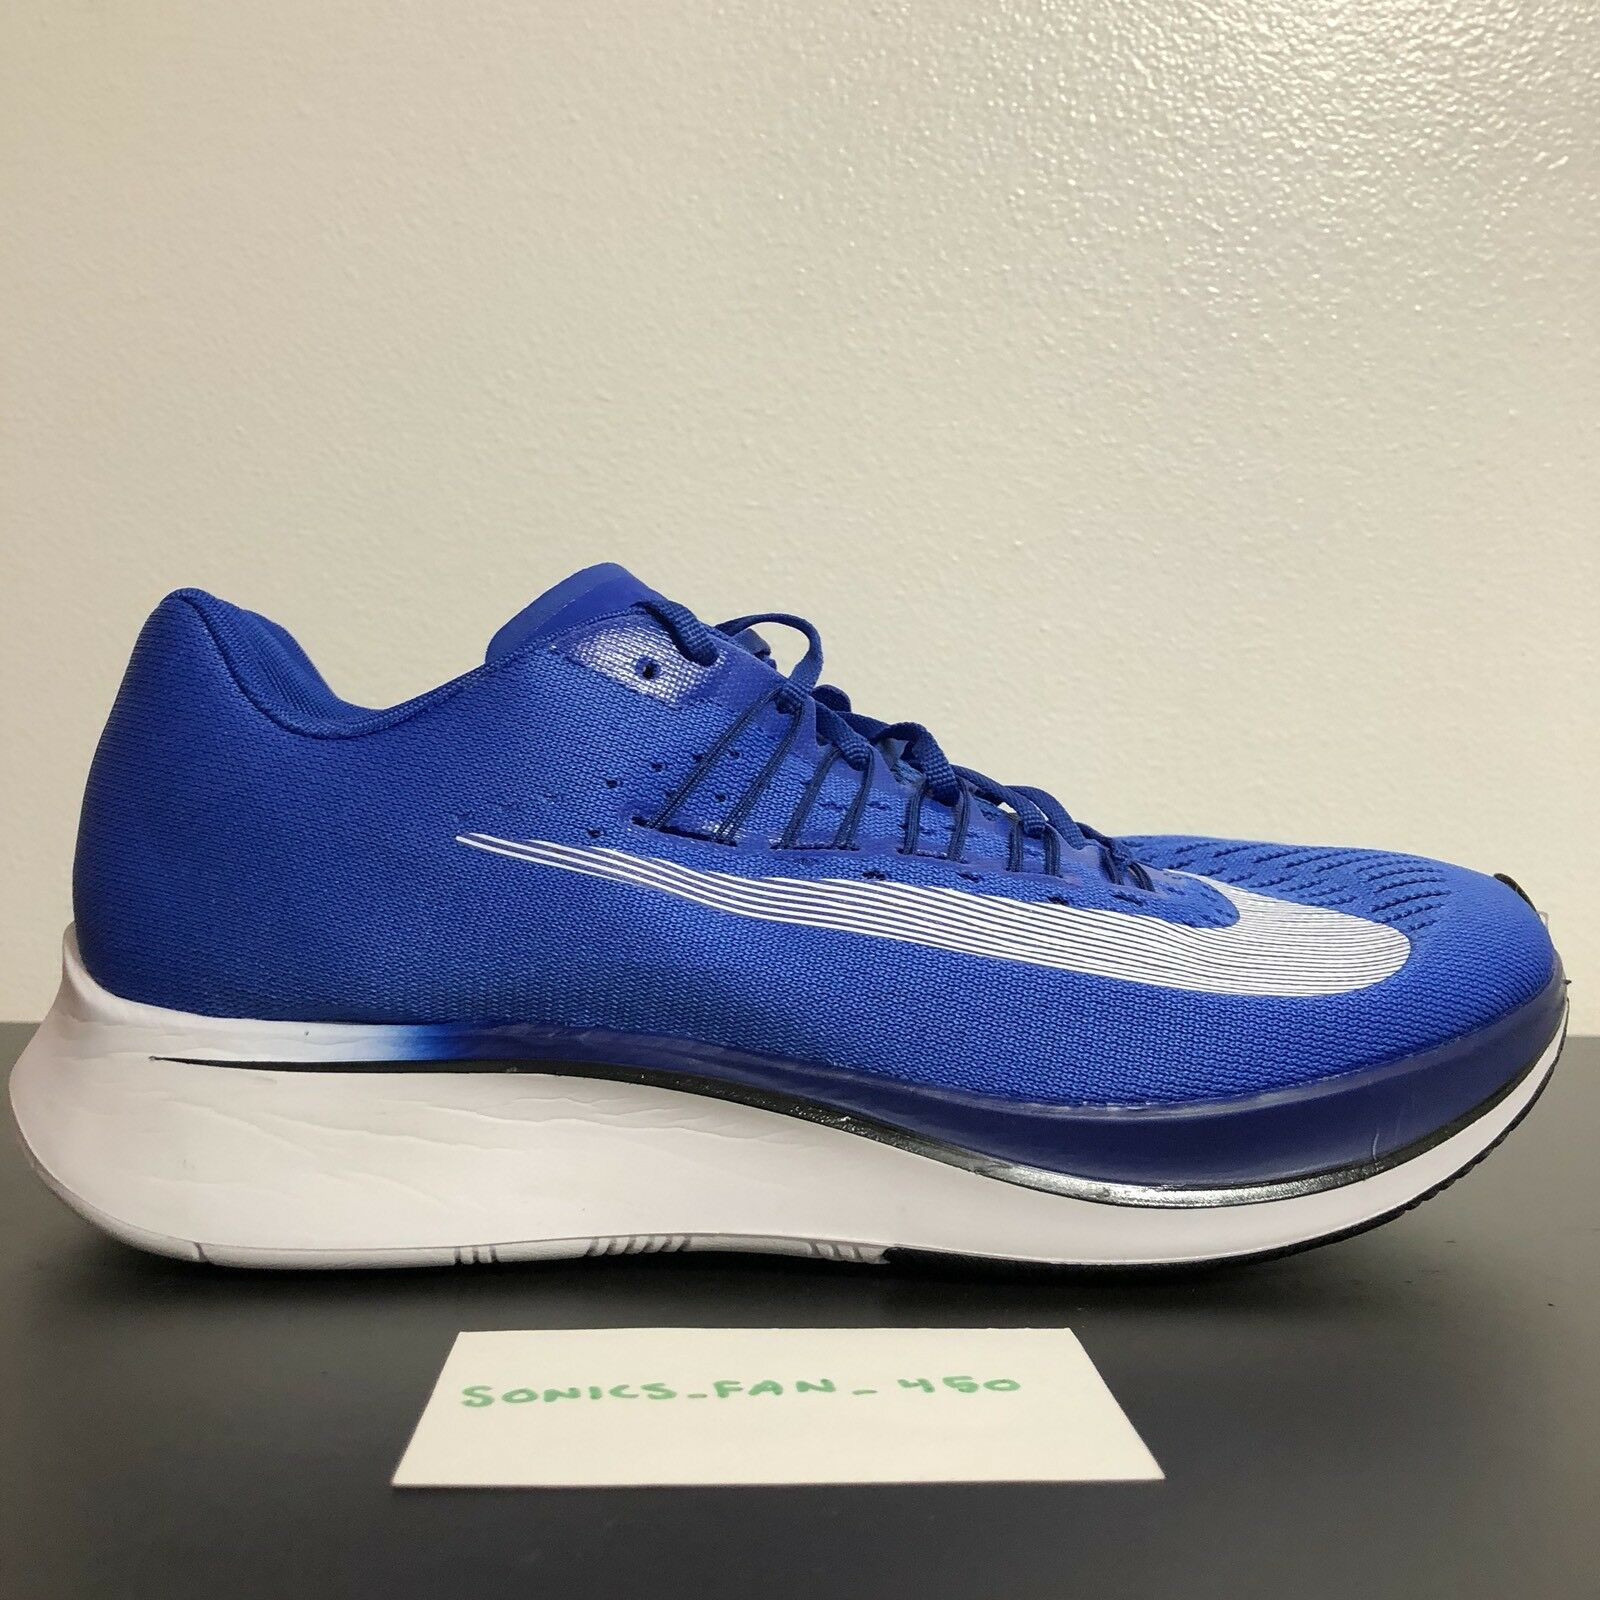 Nike Zoom Fly Size 10.5 (880848 411)  trainer running shoes react sp Brand New